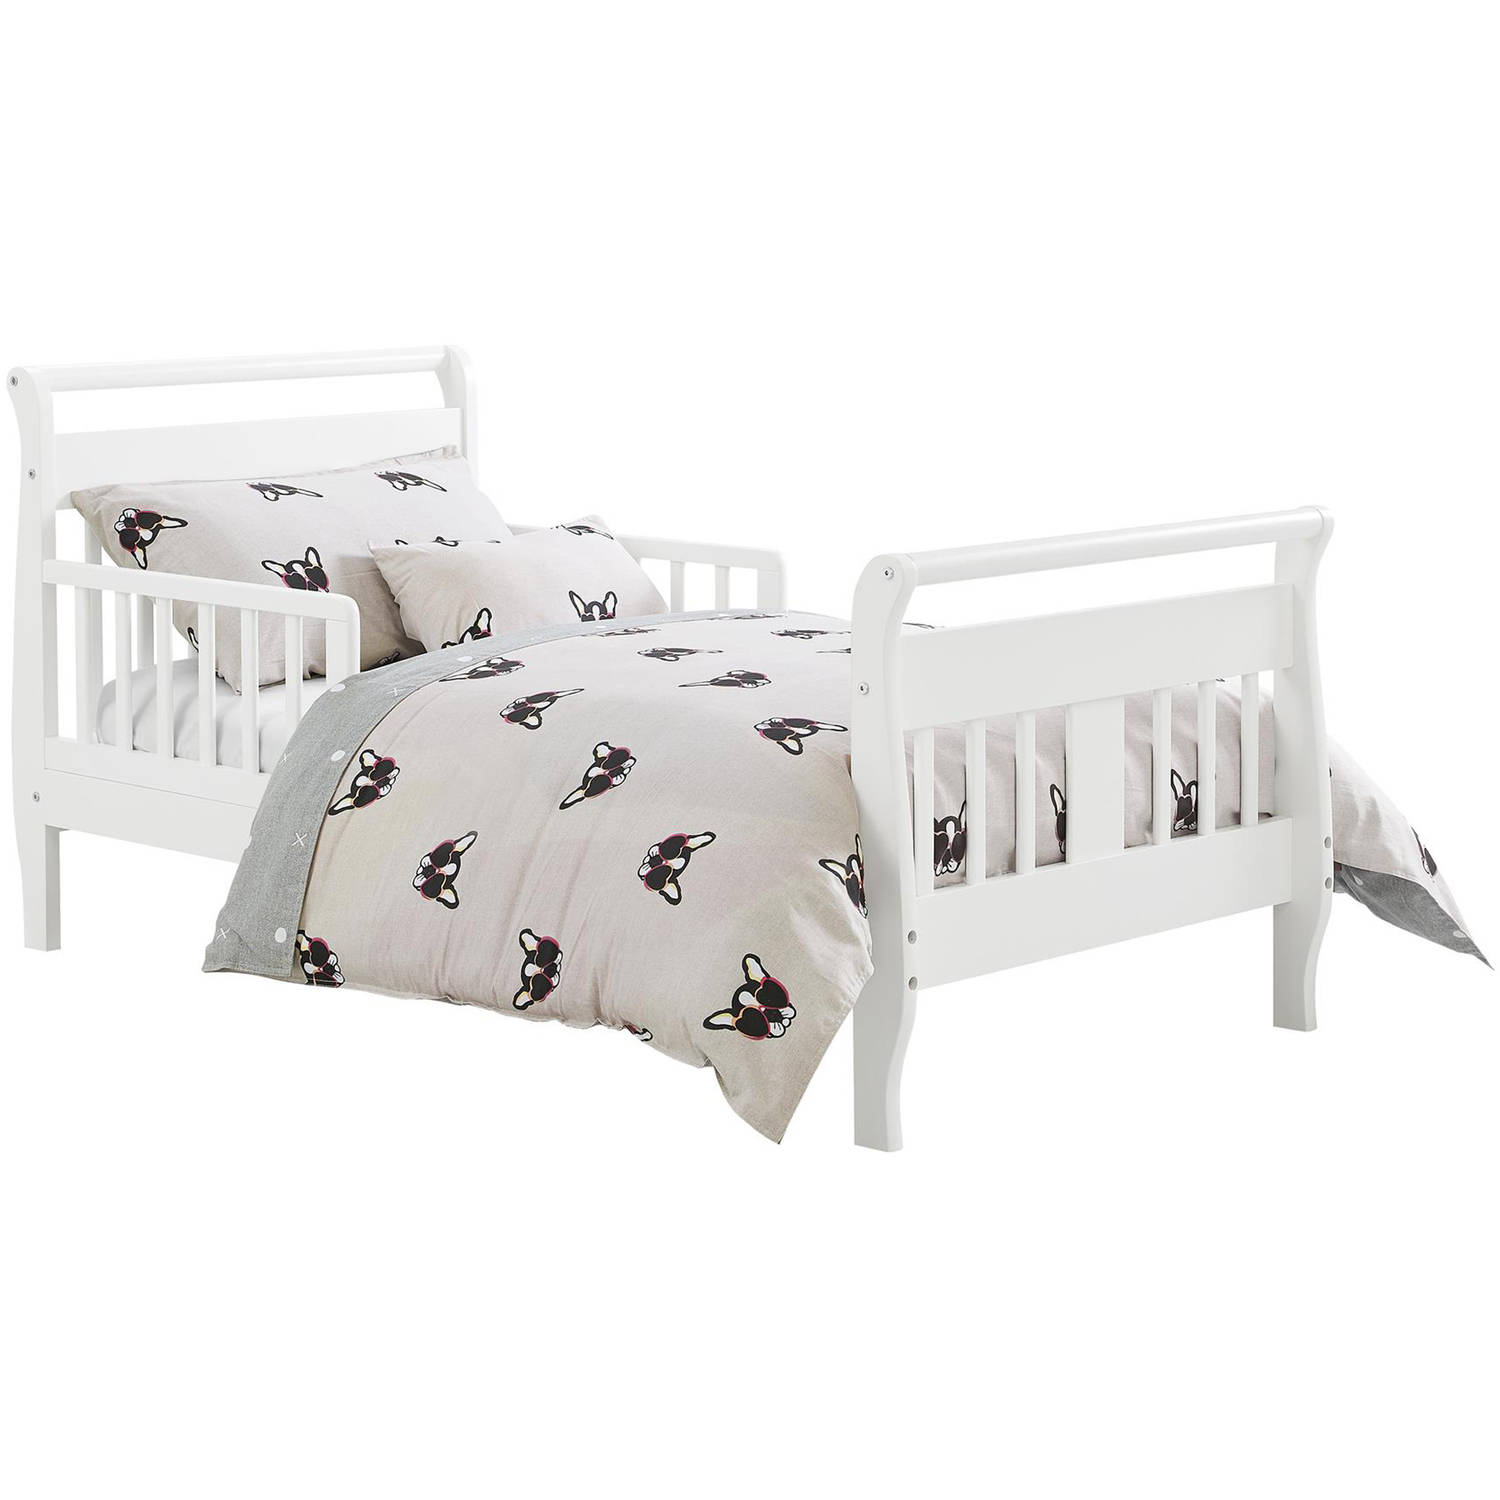 white sleigh toddler bed baby relax w 2 side rail. Black Bedroom Furniture Sets. Home Design Ideas